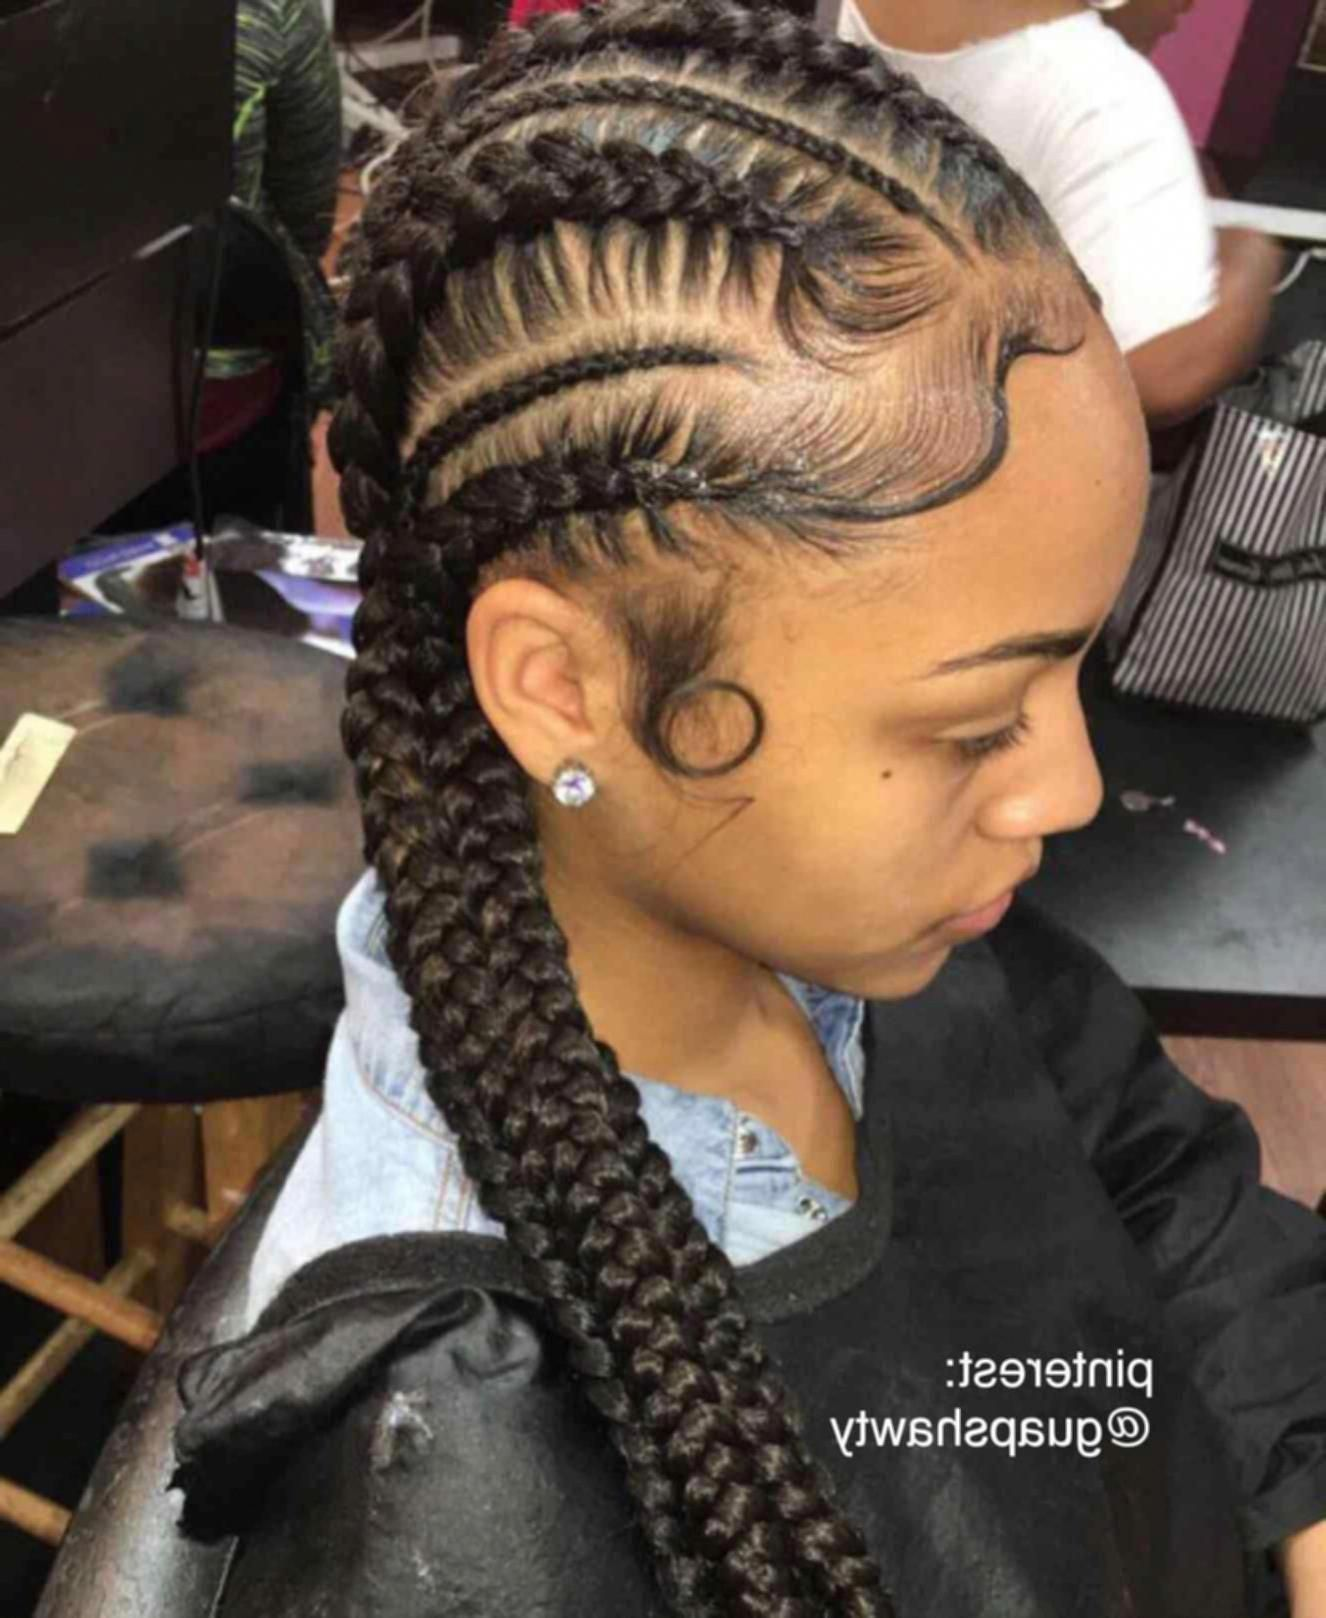 2 French Braid Hairstyles With Weave Blackhairstyles Blackhairstyleswithweave Weave Hairstyles Braided Hair Styles Braids With Weave